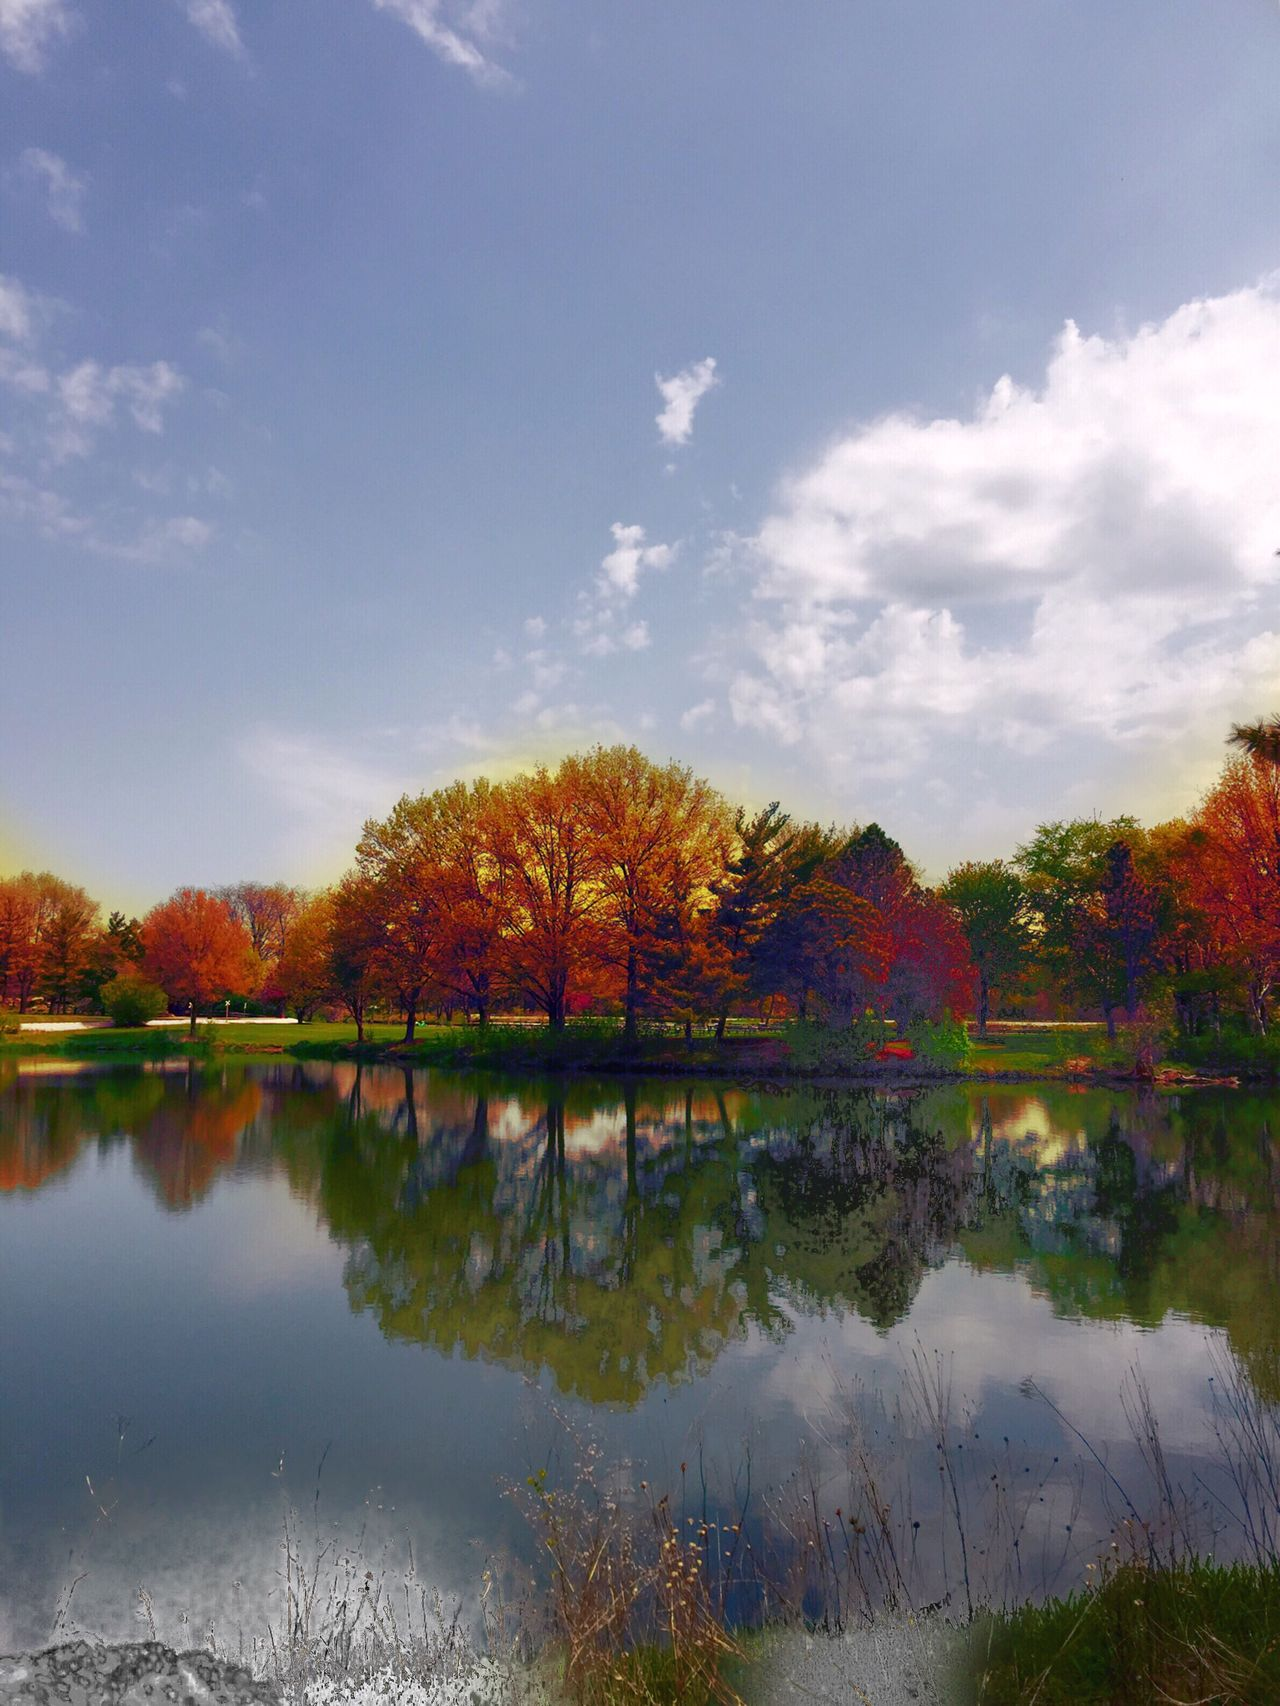 Four Seasons  Tree Reflection Nature Water Sky Beauty In Nature Autumn Lake Scenics Abstract Abstractions In Colors Abstract Photography My Own Style Of Beauty Landscape Landscape_Collection The Week Of Eyeem Change Growth Tranquility Outdoors No People Waterfront Day Grass